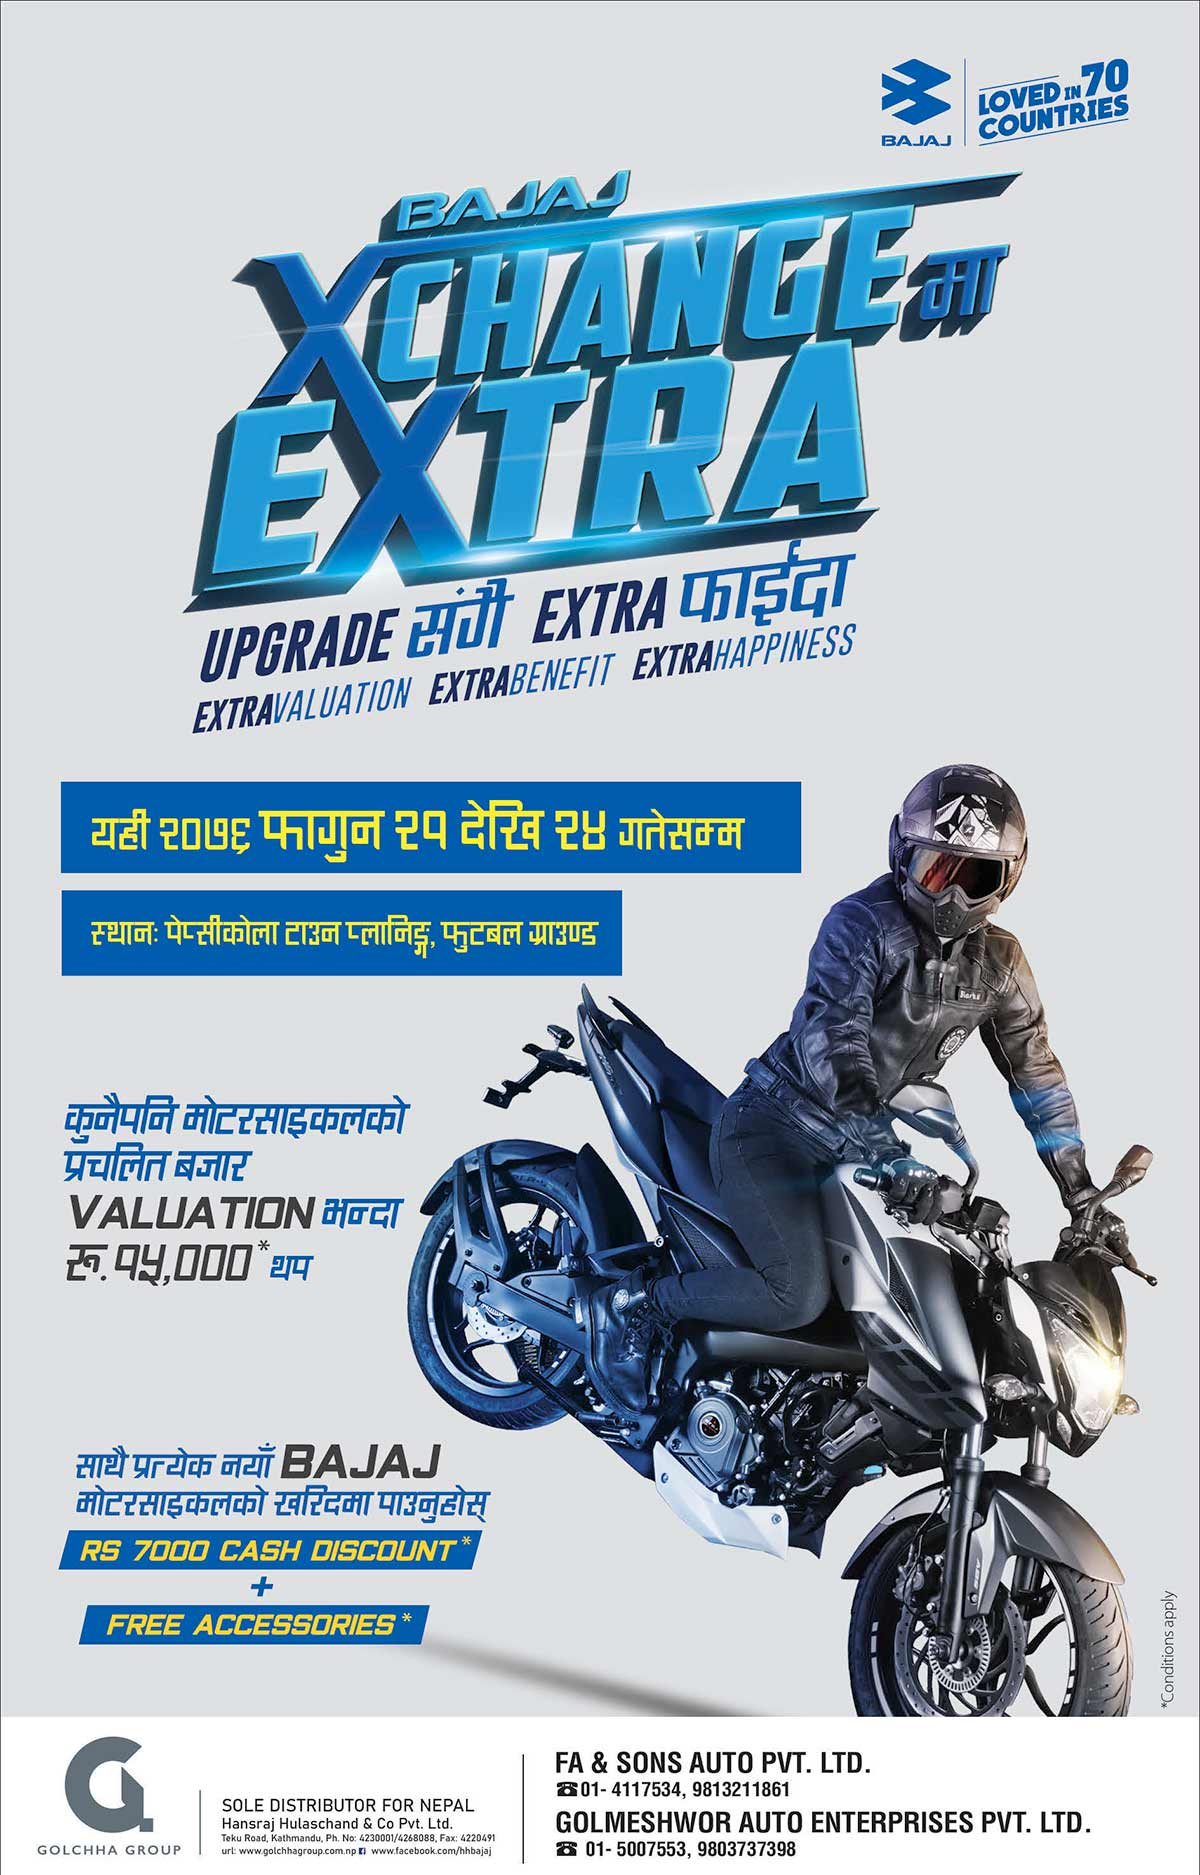 Bajaj Nepal Exchange March4 Image1